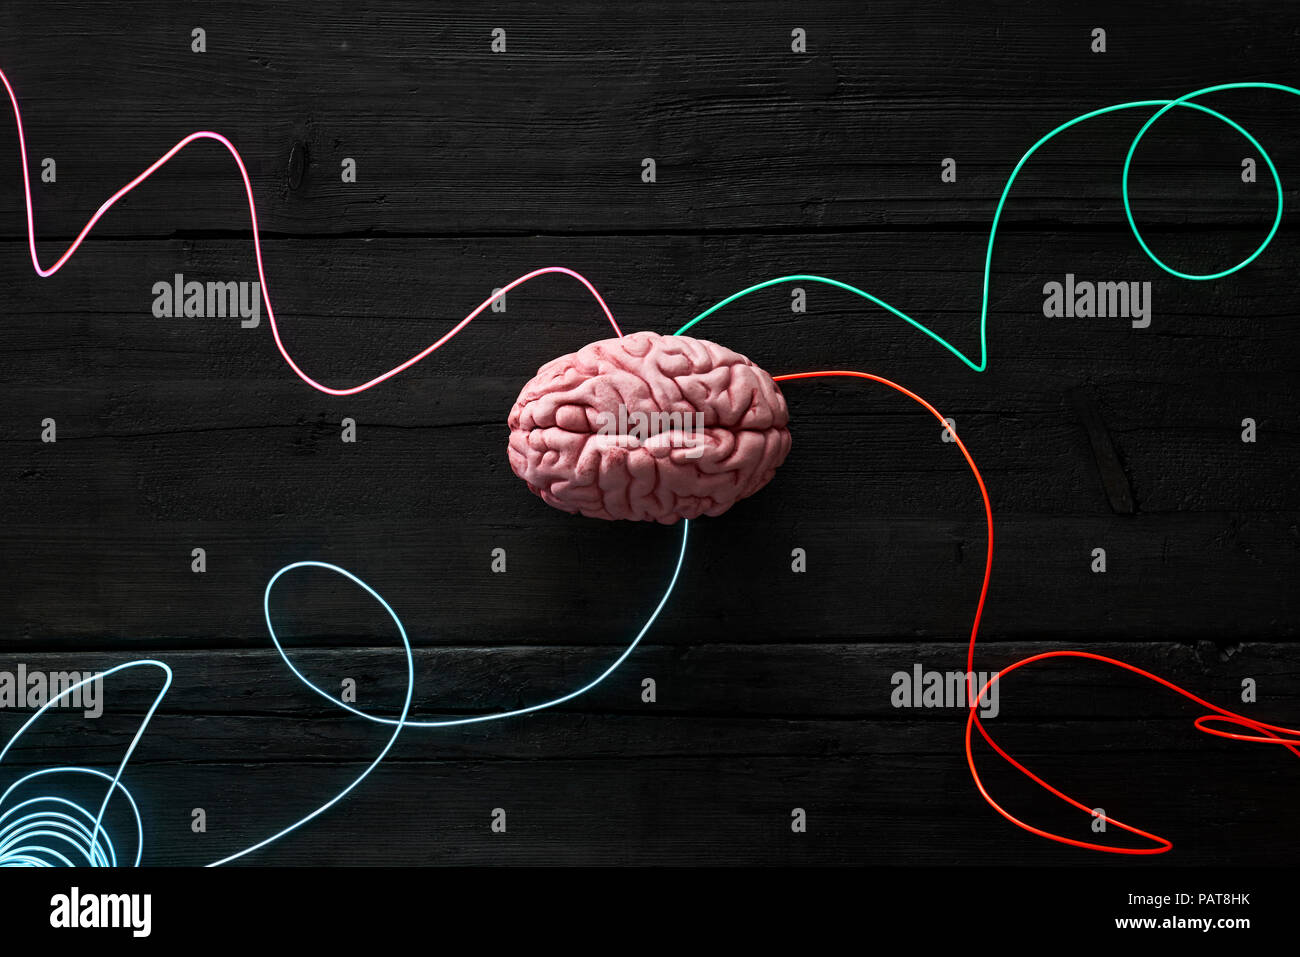 Wired brain, symbol for deep learning - Stock Image